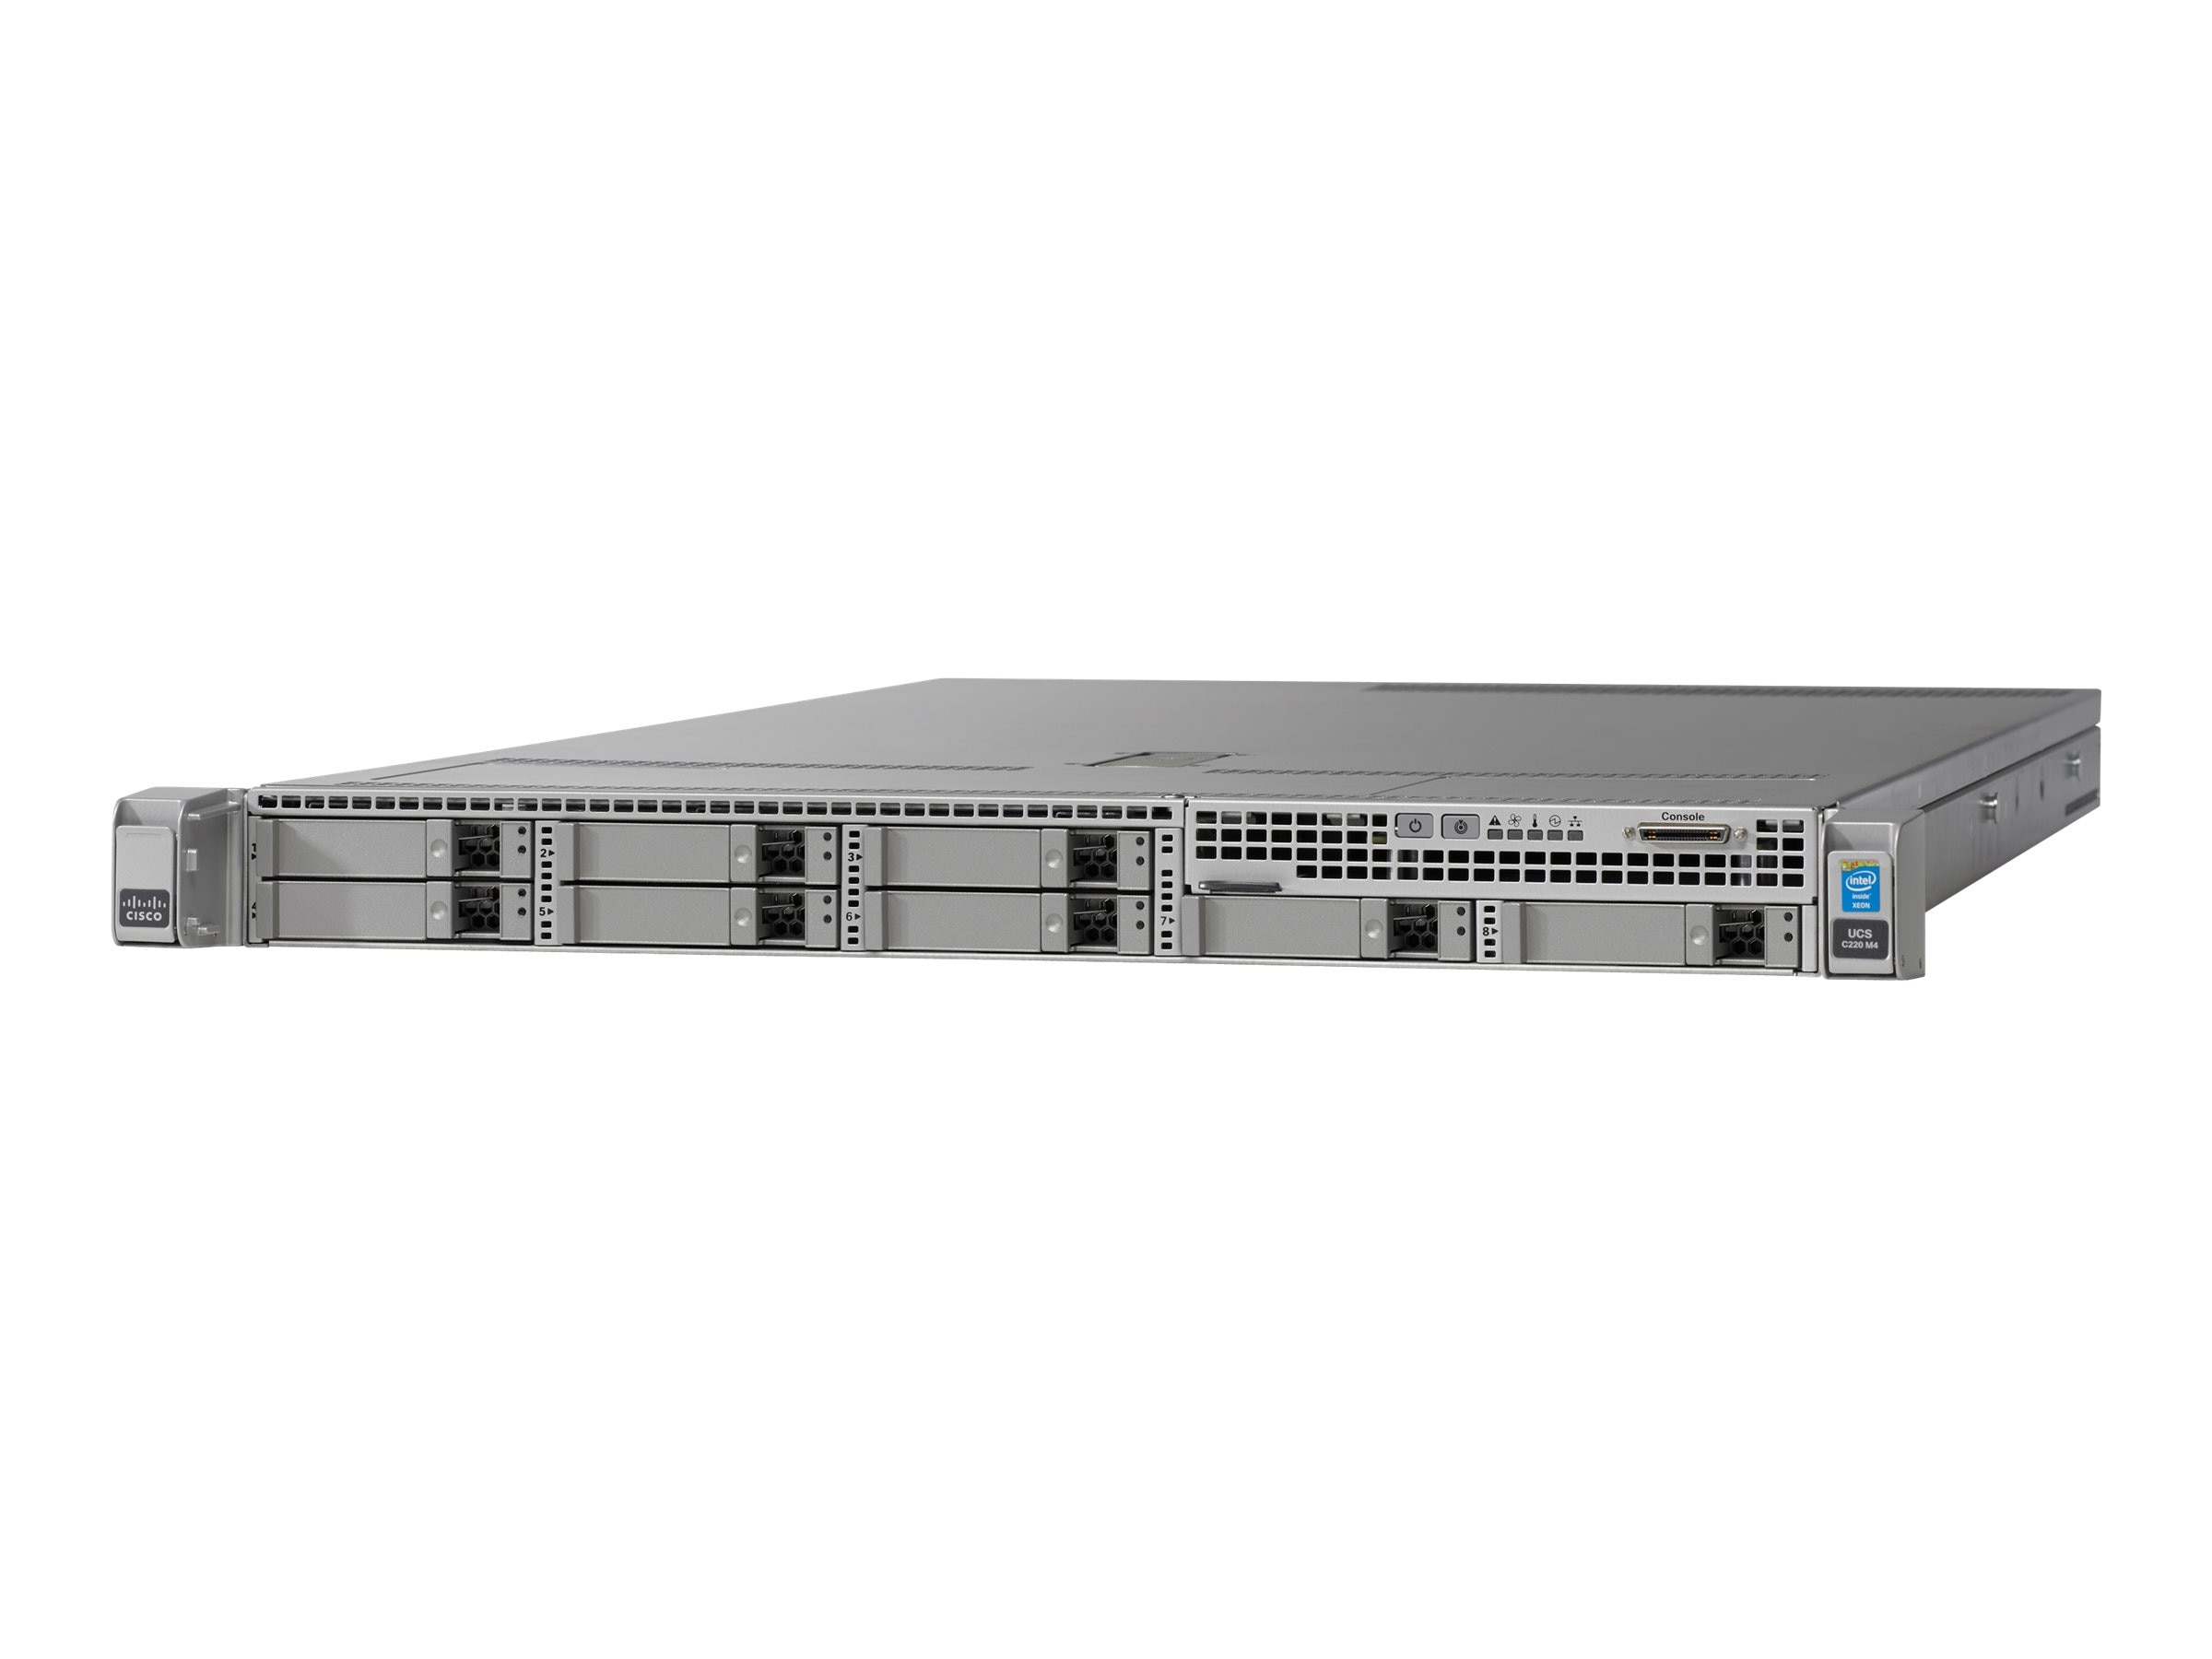 Cisco Not Sold Standalone UCS SP Select C220 M4S Advanced 1 (2x)Xeon E5-2680 v3 128GB VIC1227